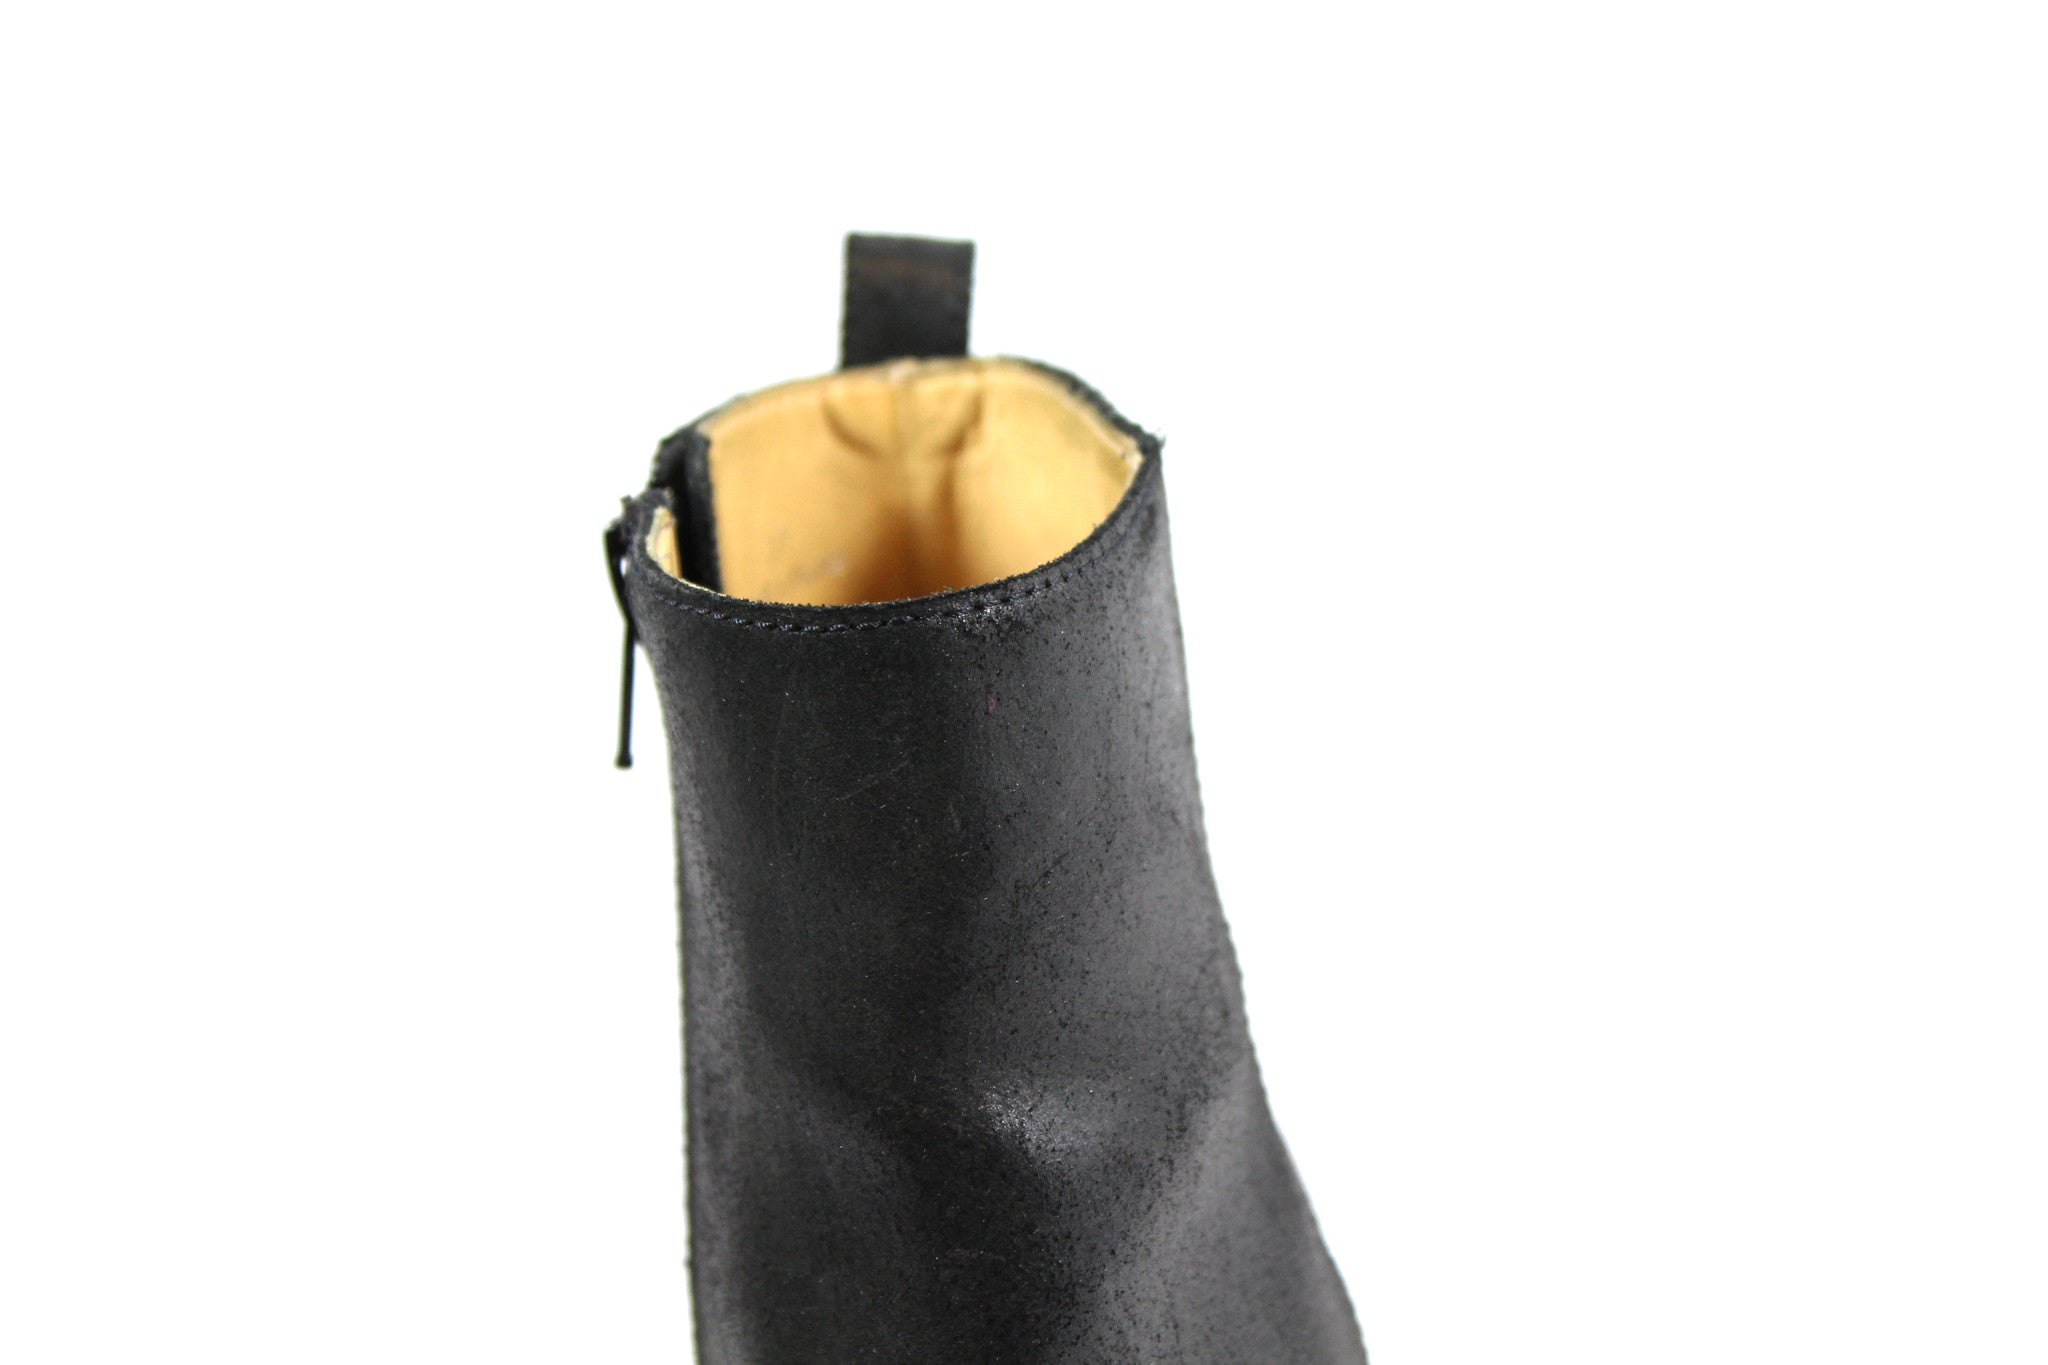 MM6 Maison Margiela Wedge Booties - Encore Consignment - 10